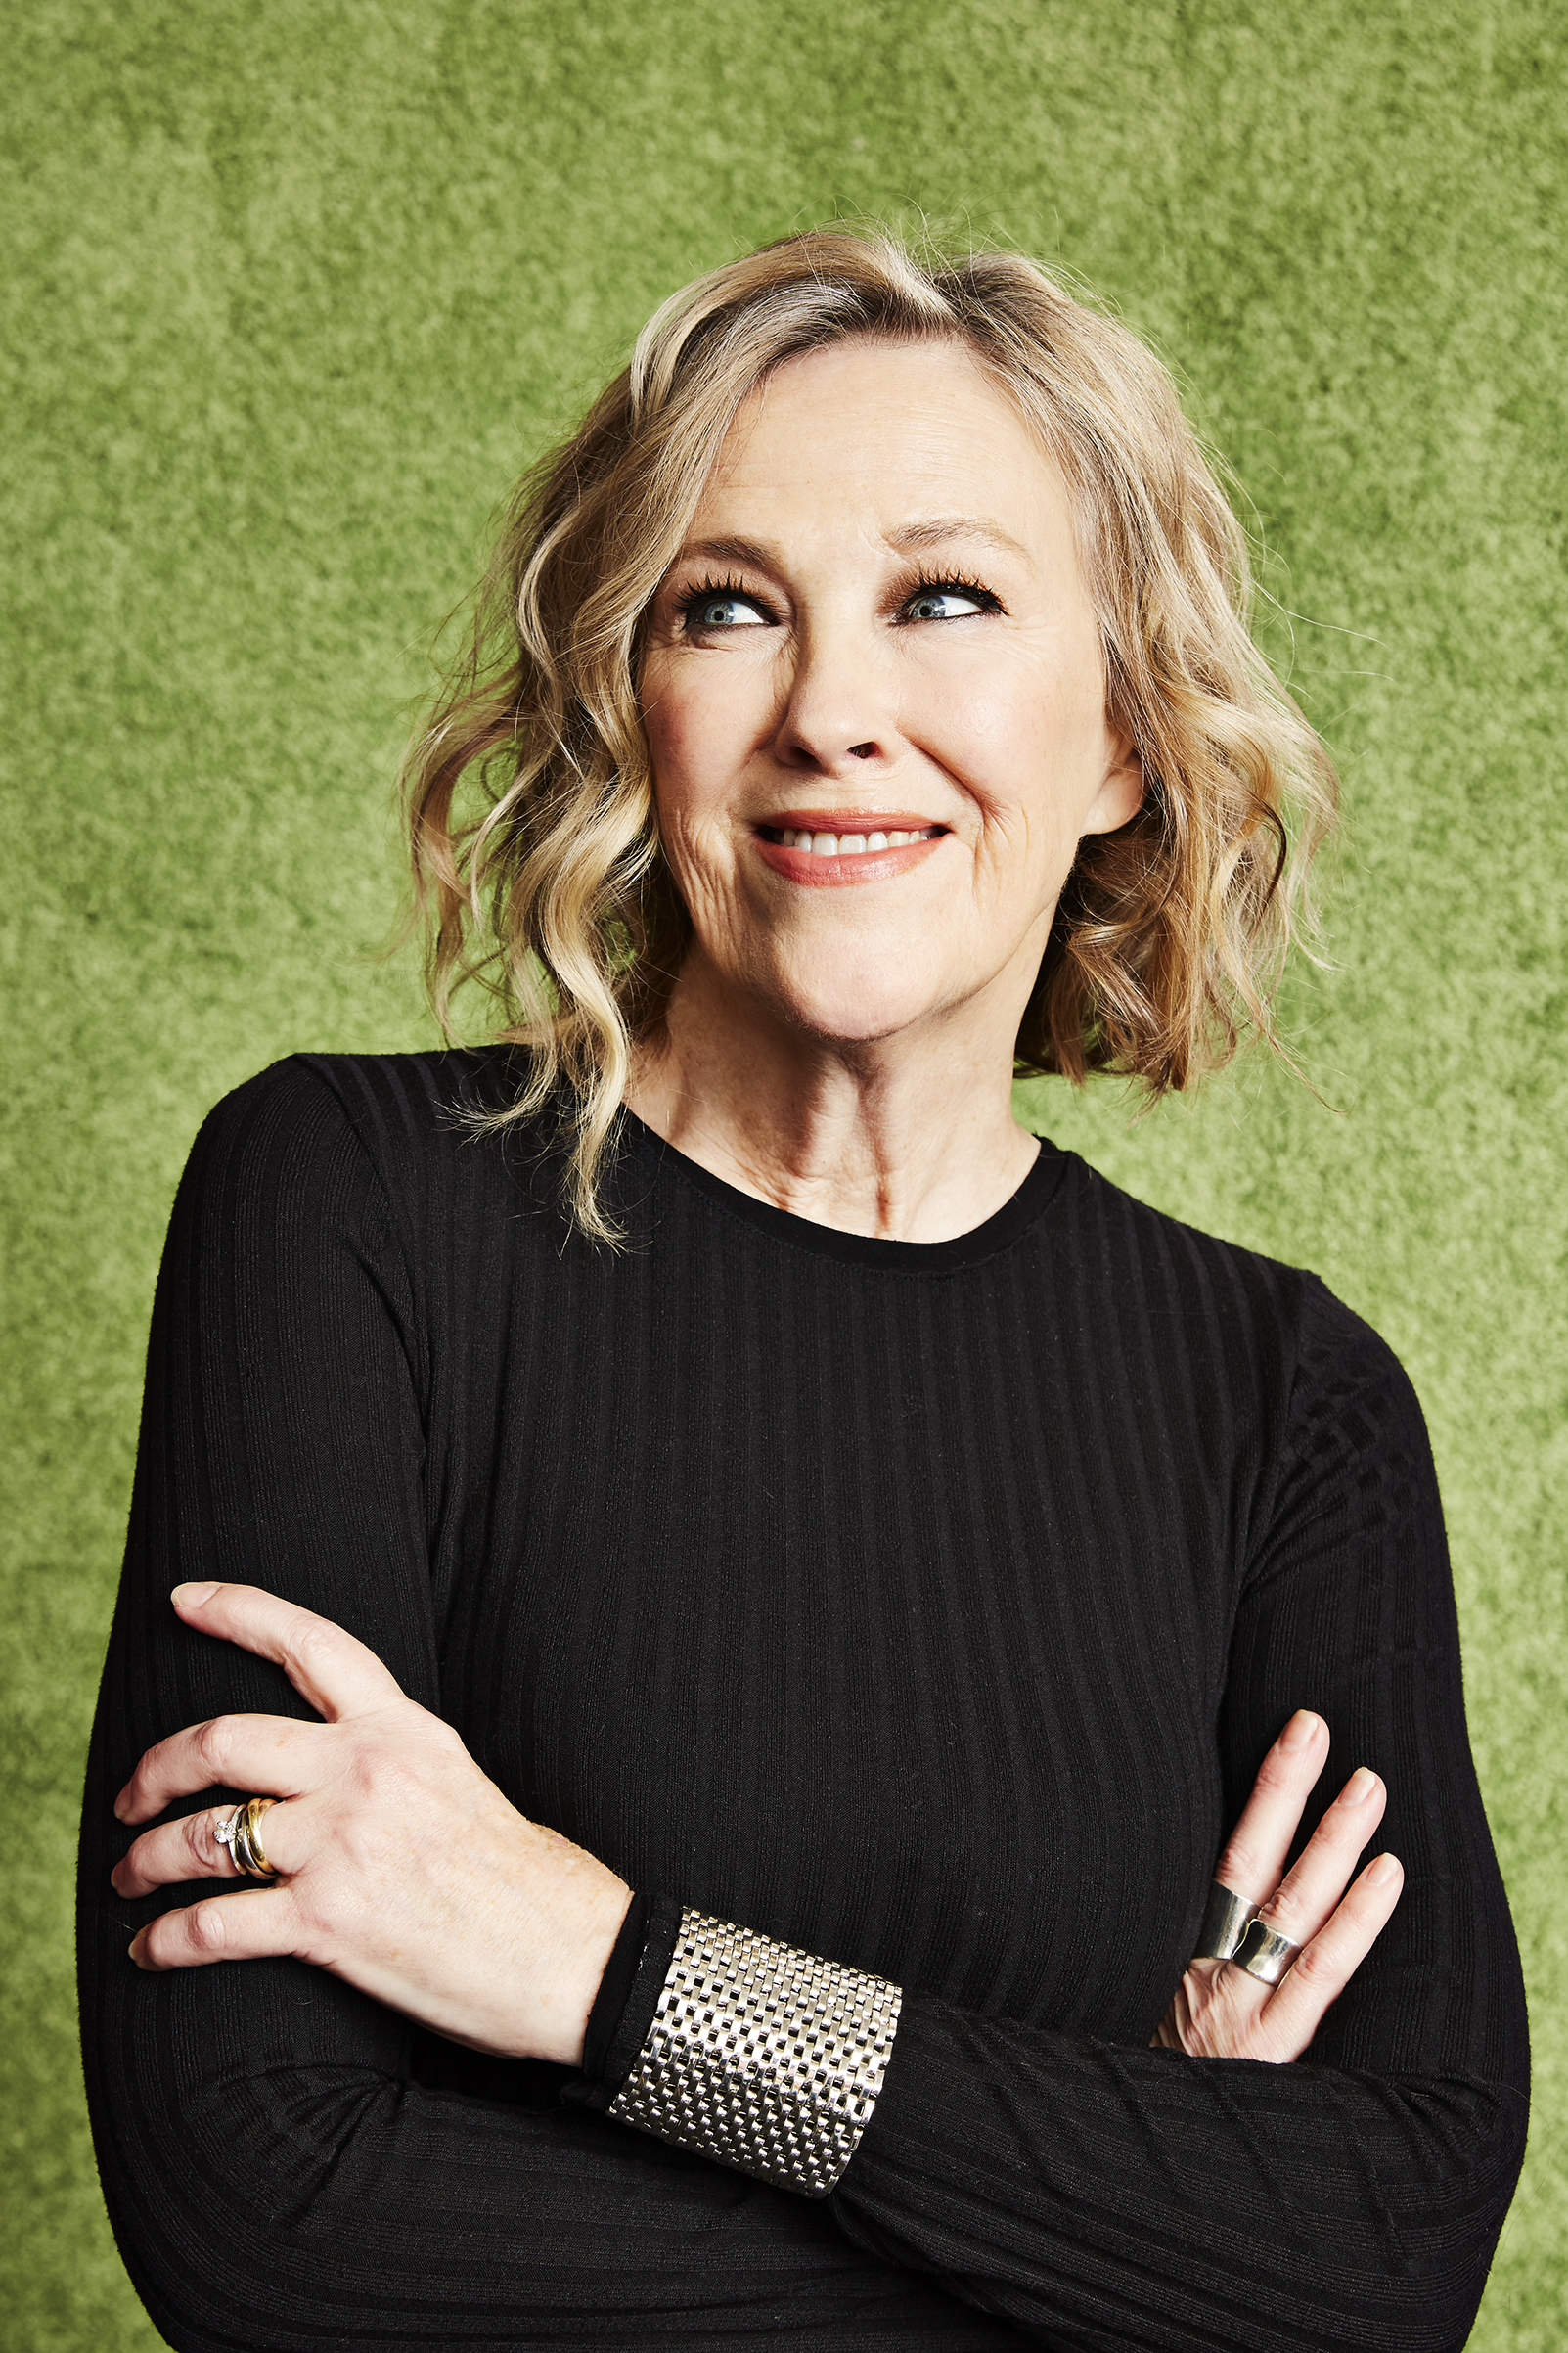 'I've never, for a second, been drawn to the idea of doing a one-woman show.' — Catherine O'Hara, on her preference for collaboration